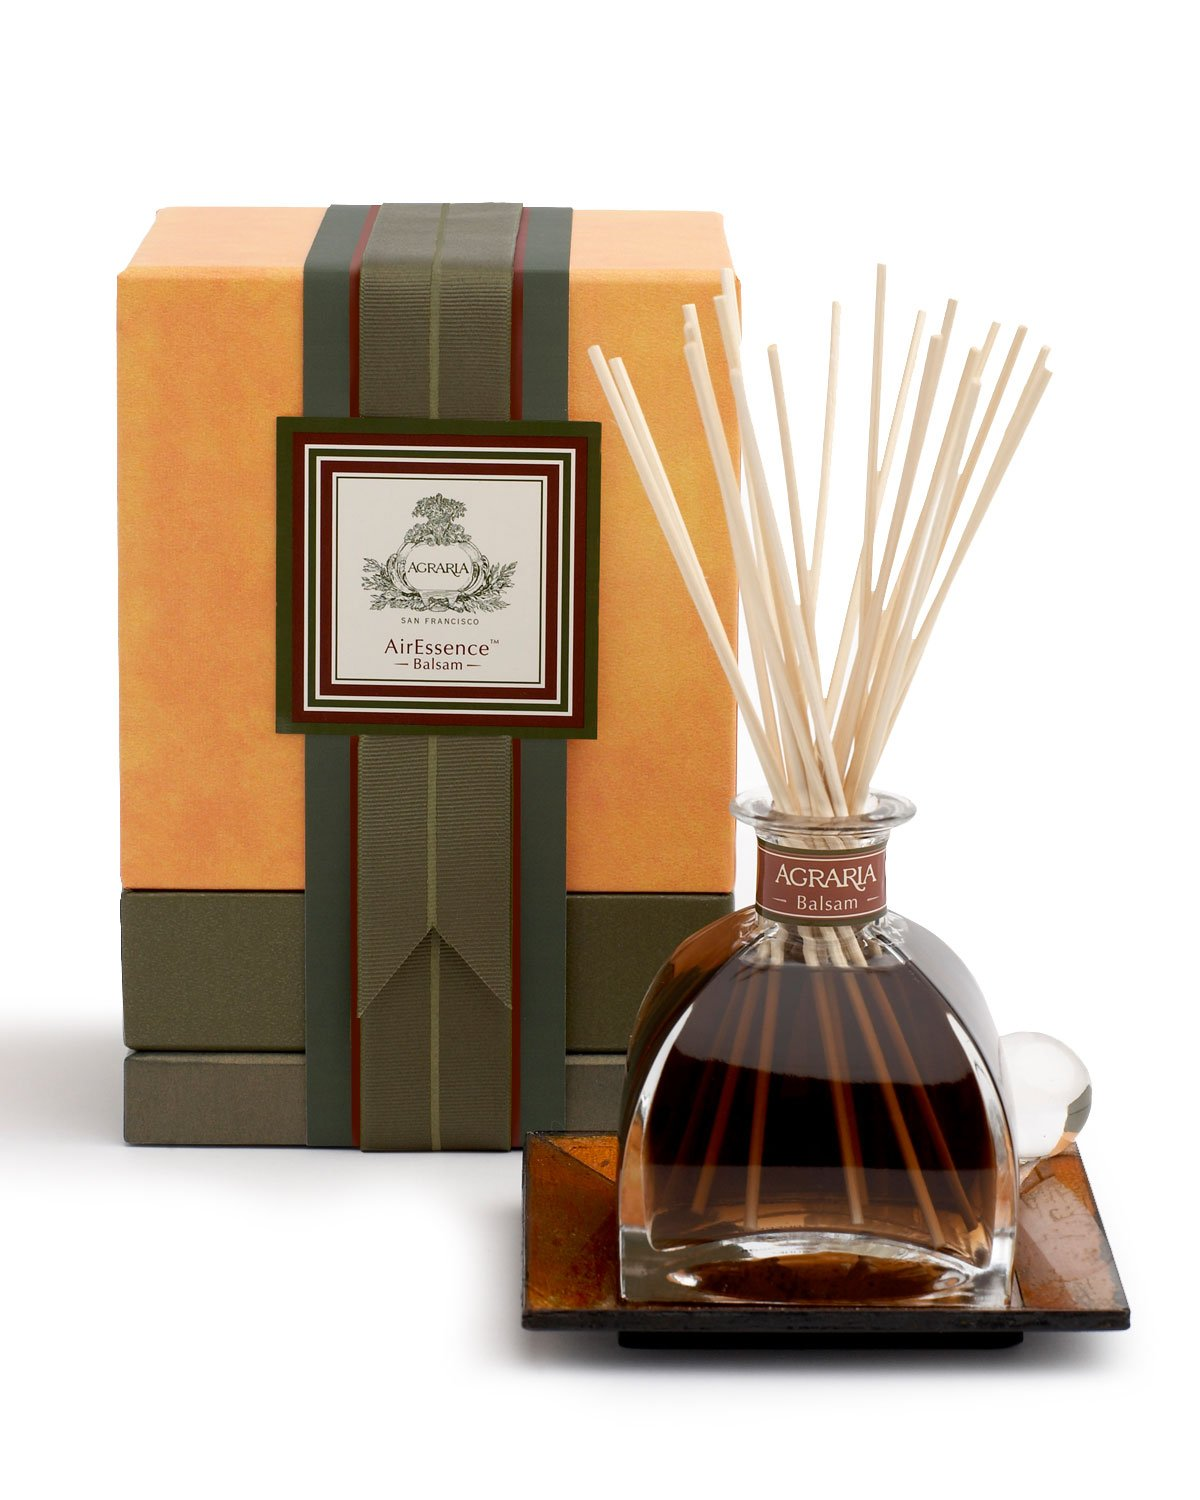 BALSAM AGRARIA Flower AirEssence Diffuser - 7.4 oz